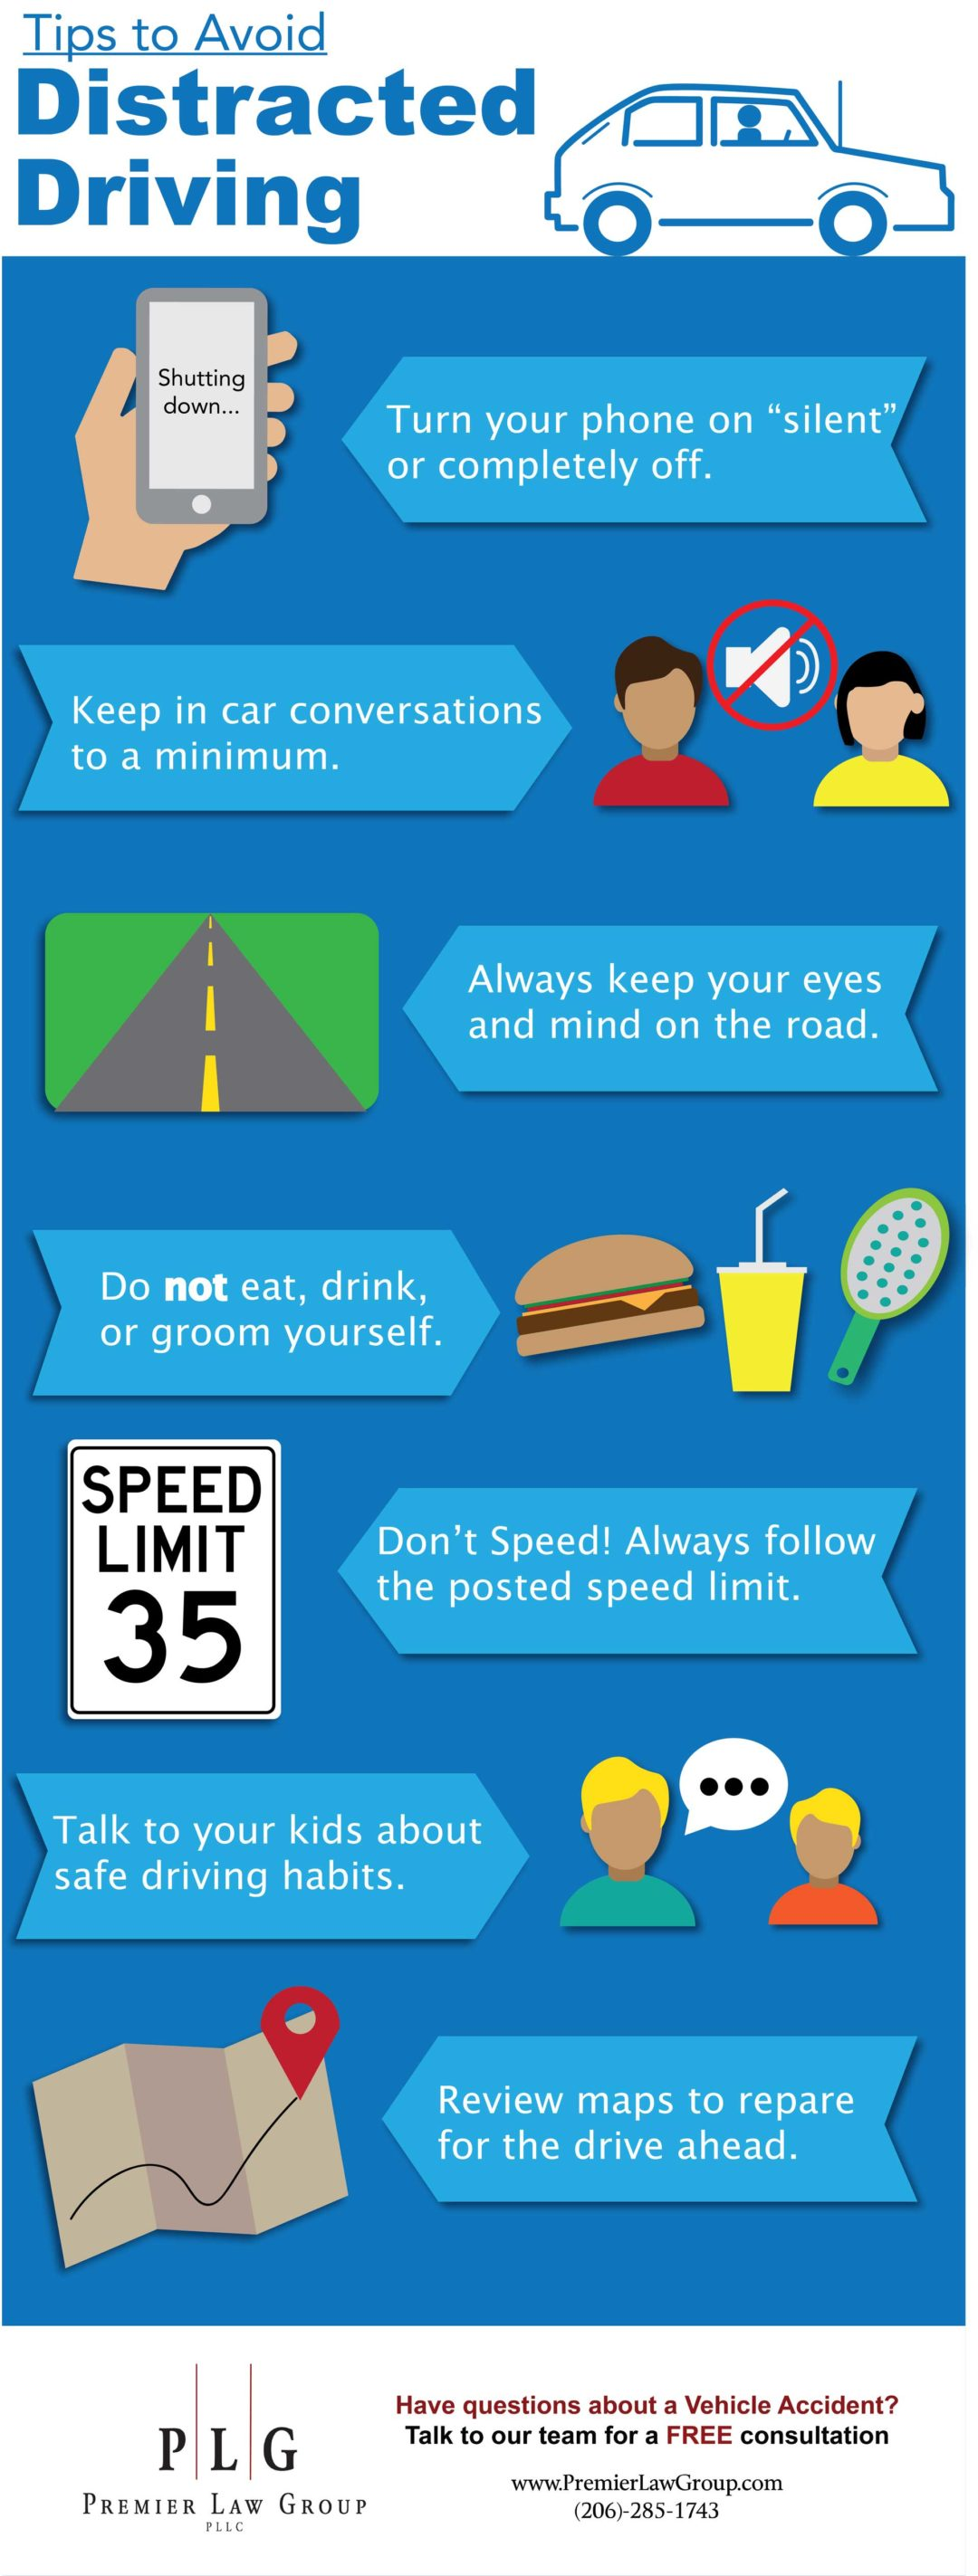 Tips to avoid Distracted Driving